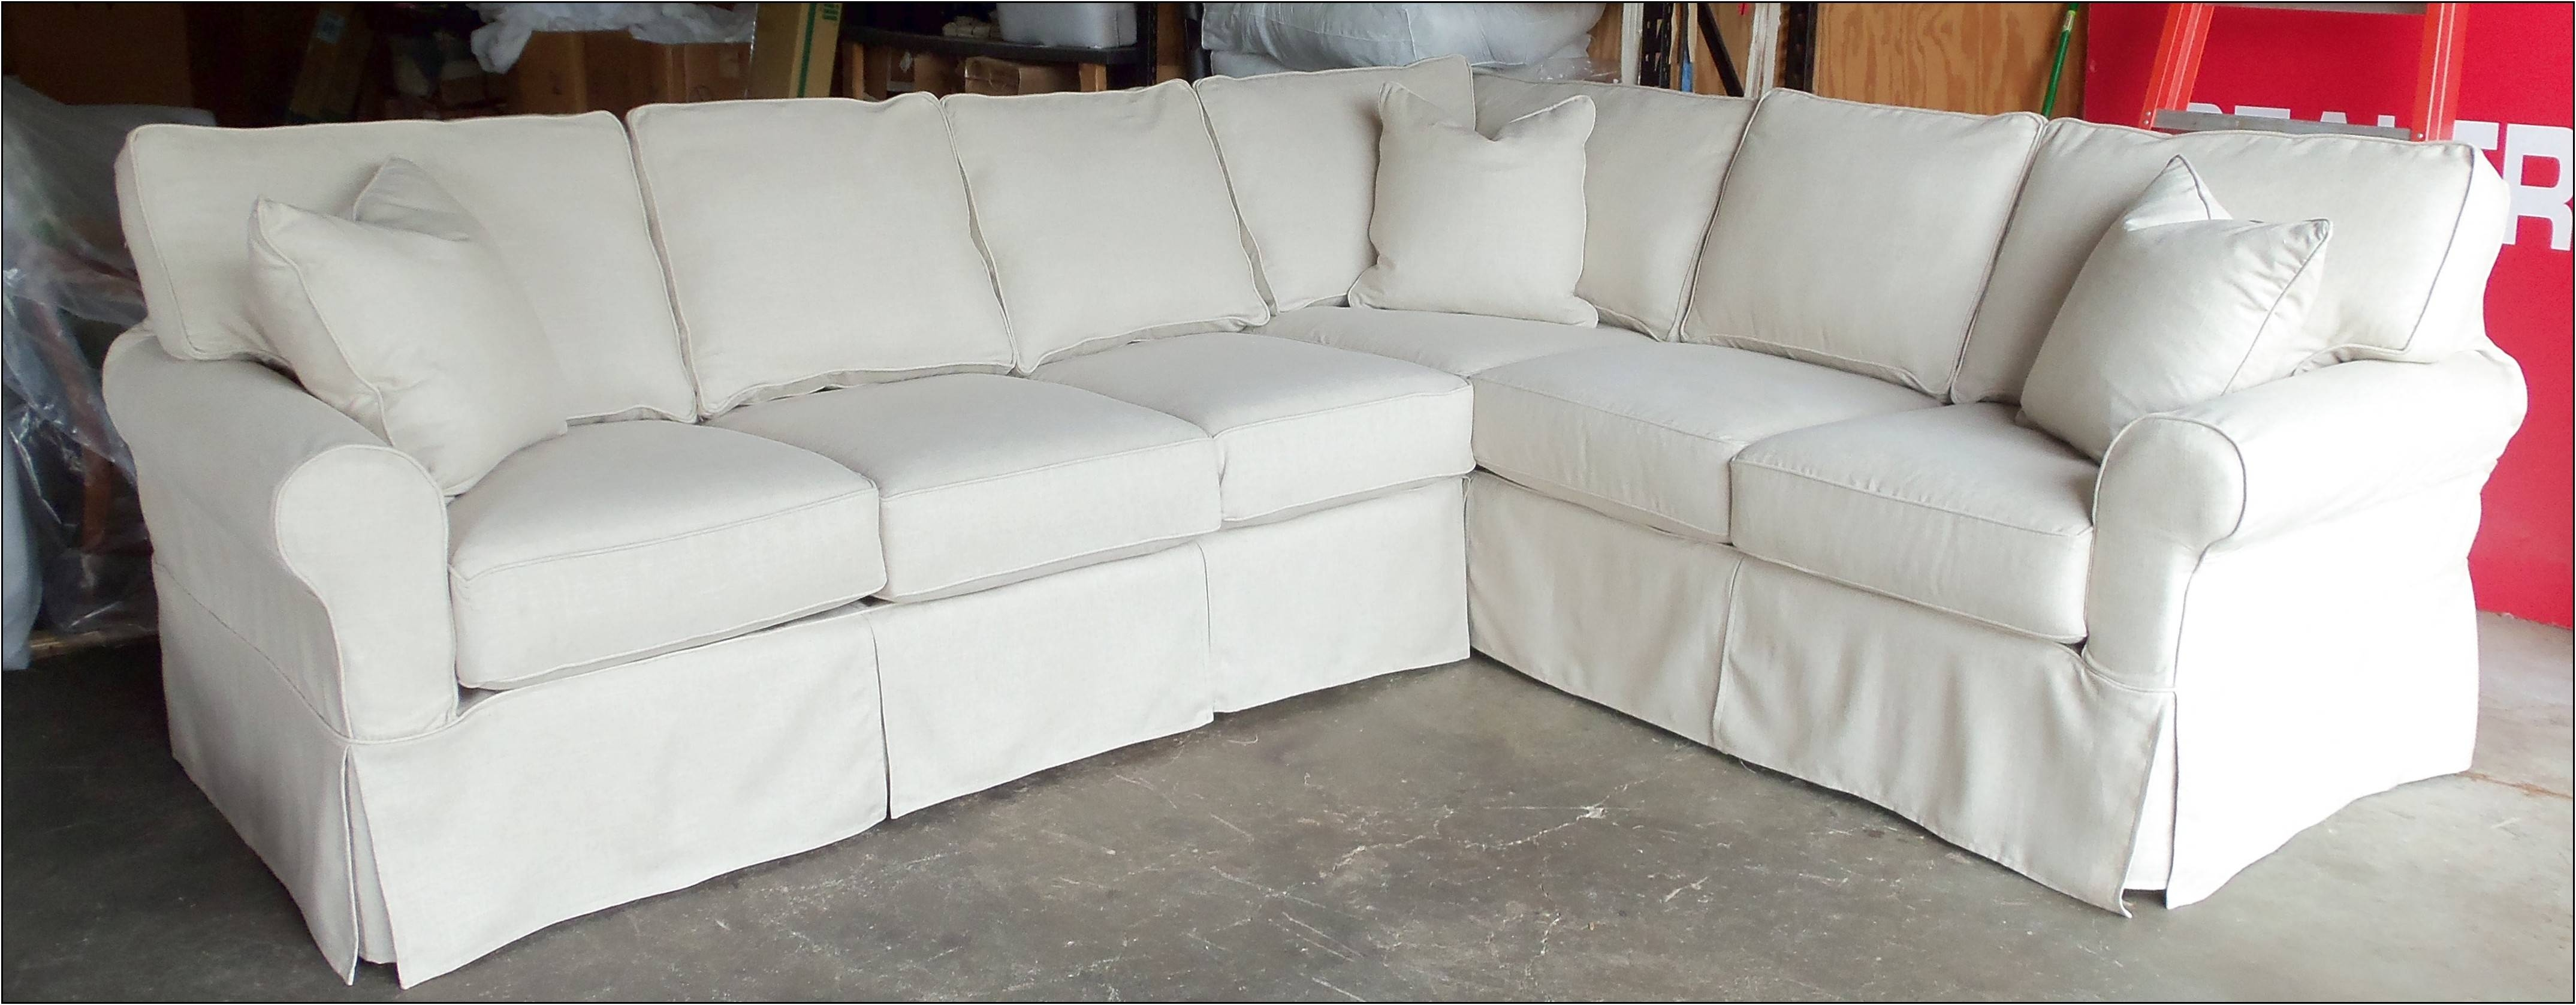 Furniture: Slipcovers For Sofas With Cushions Separate within Shabby Chic Sectional Sofas Couches (Image 10 of 15)